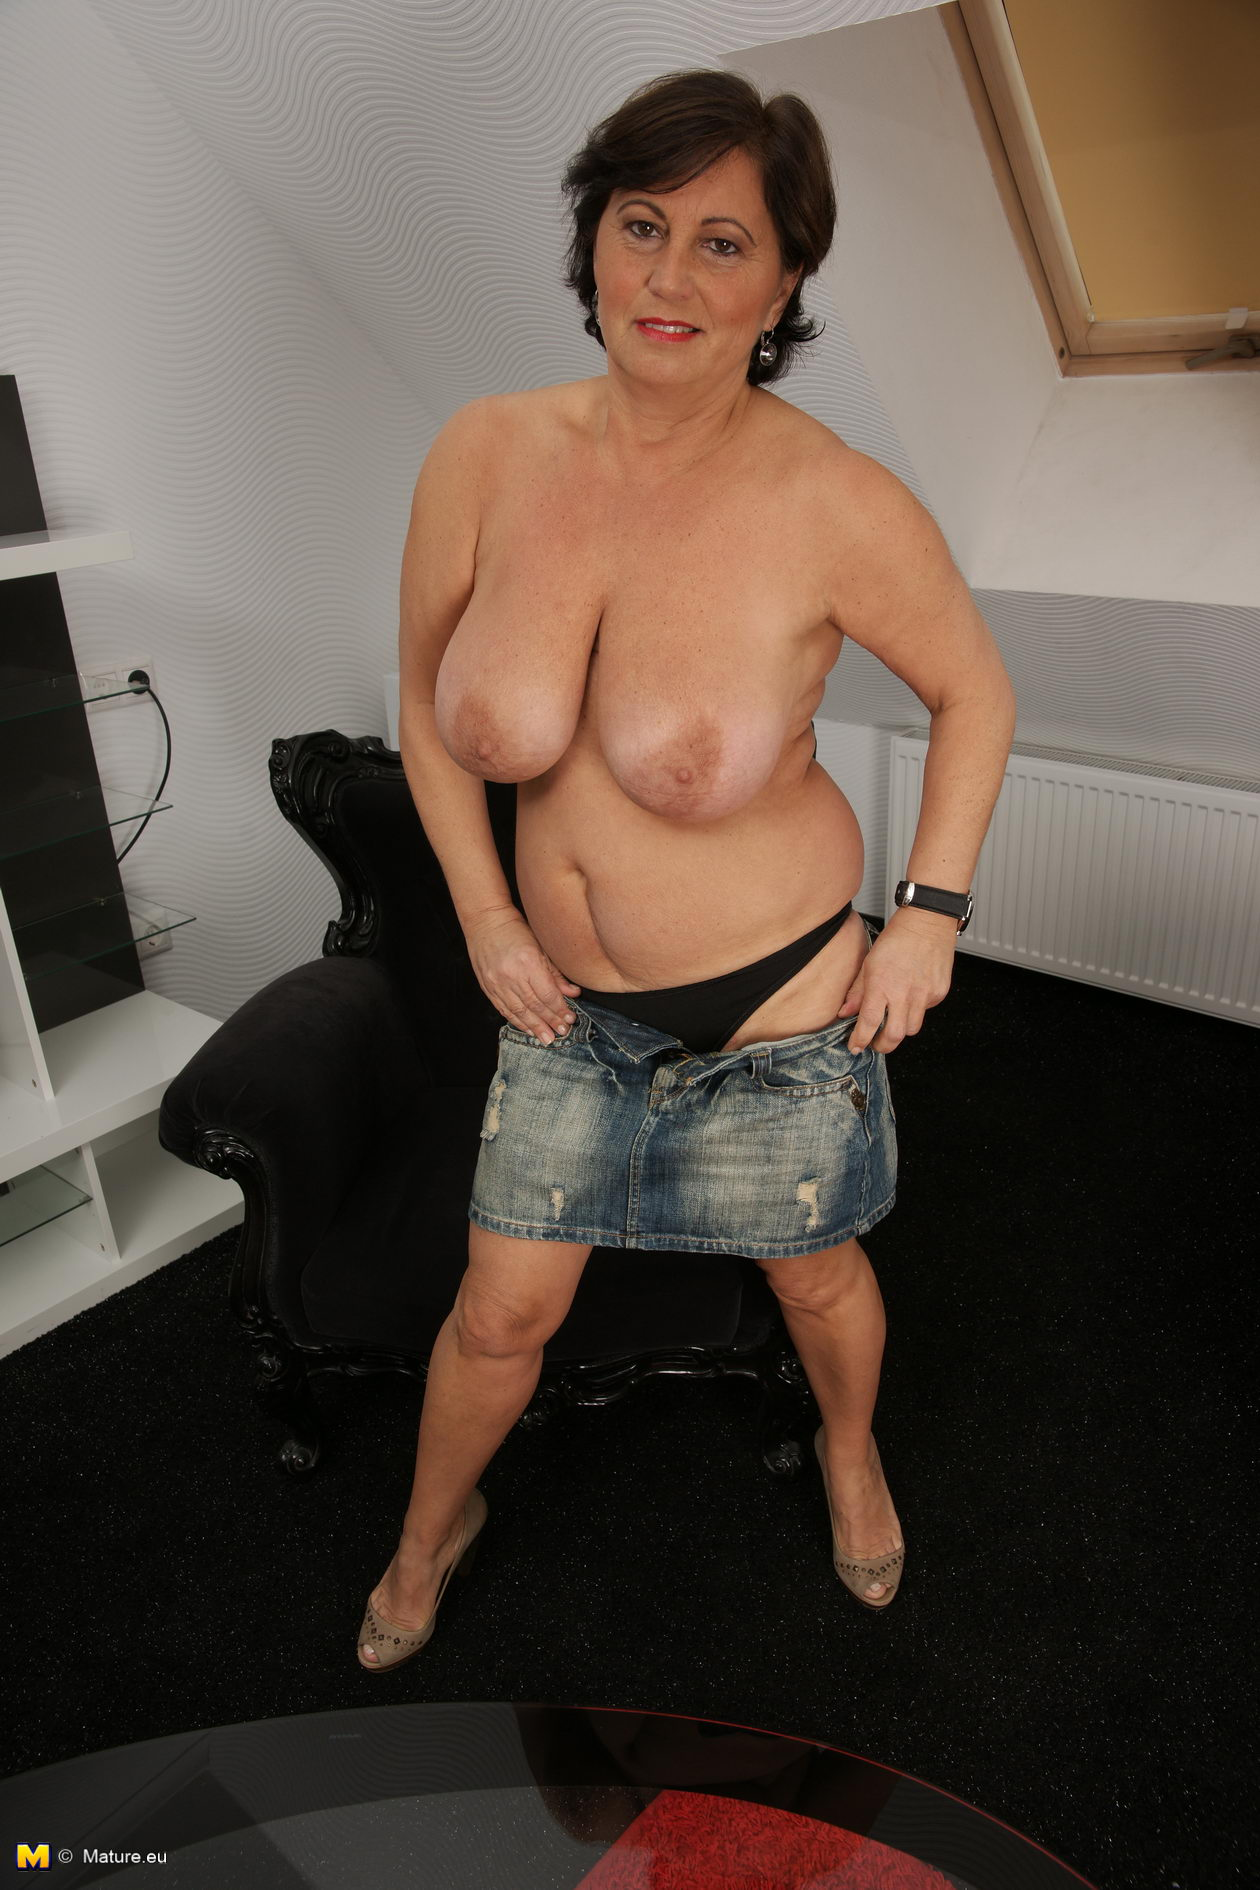 Very busty slutty granny on dating site